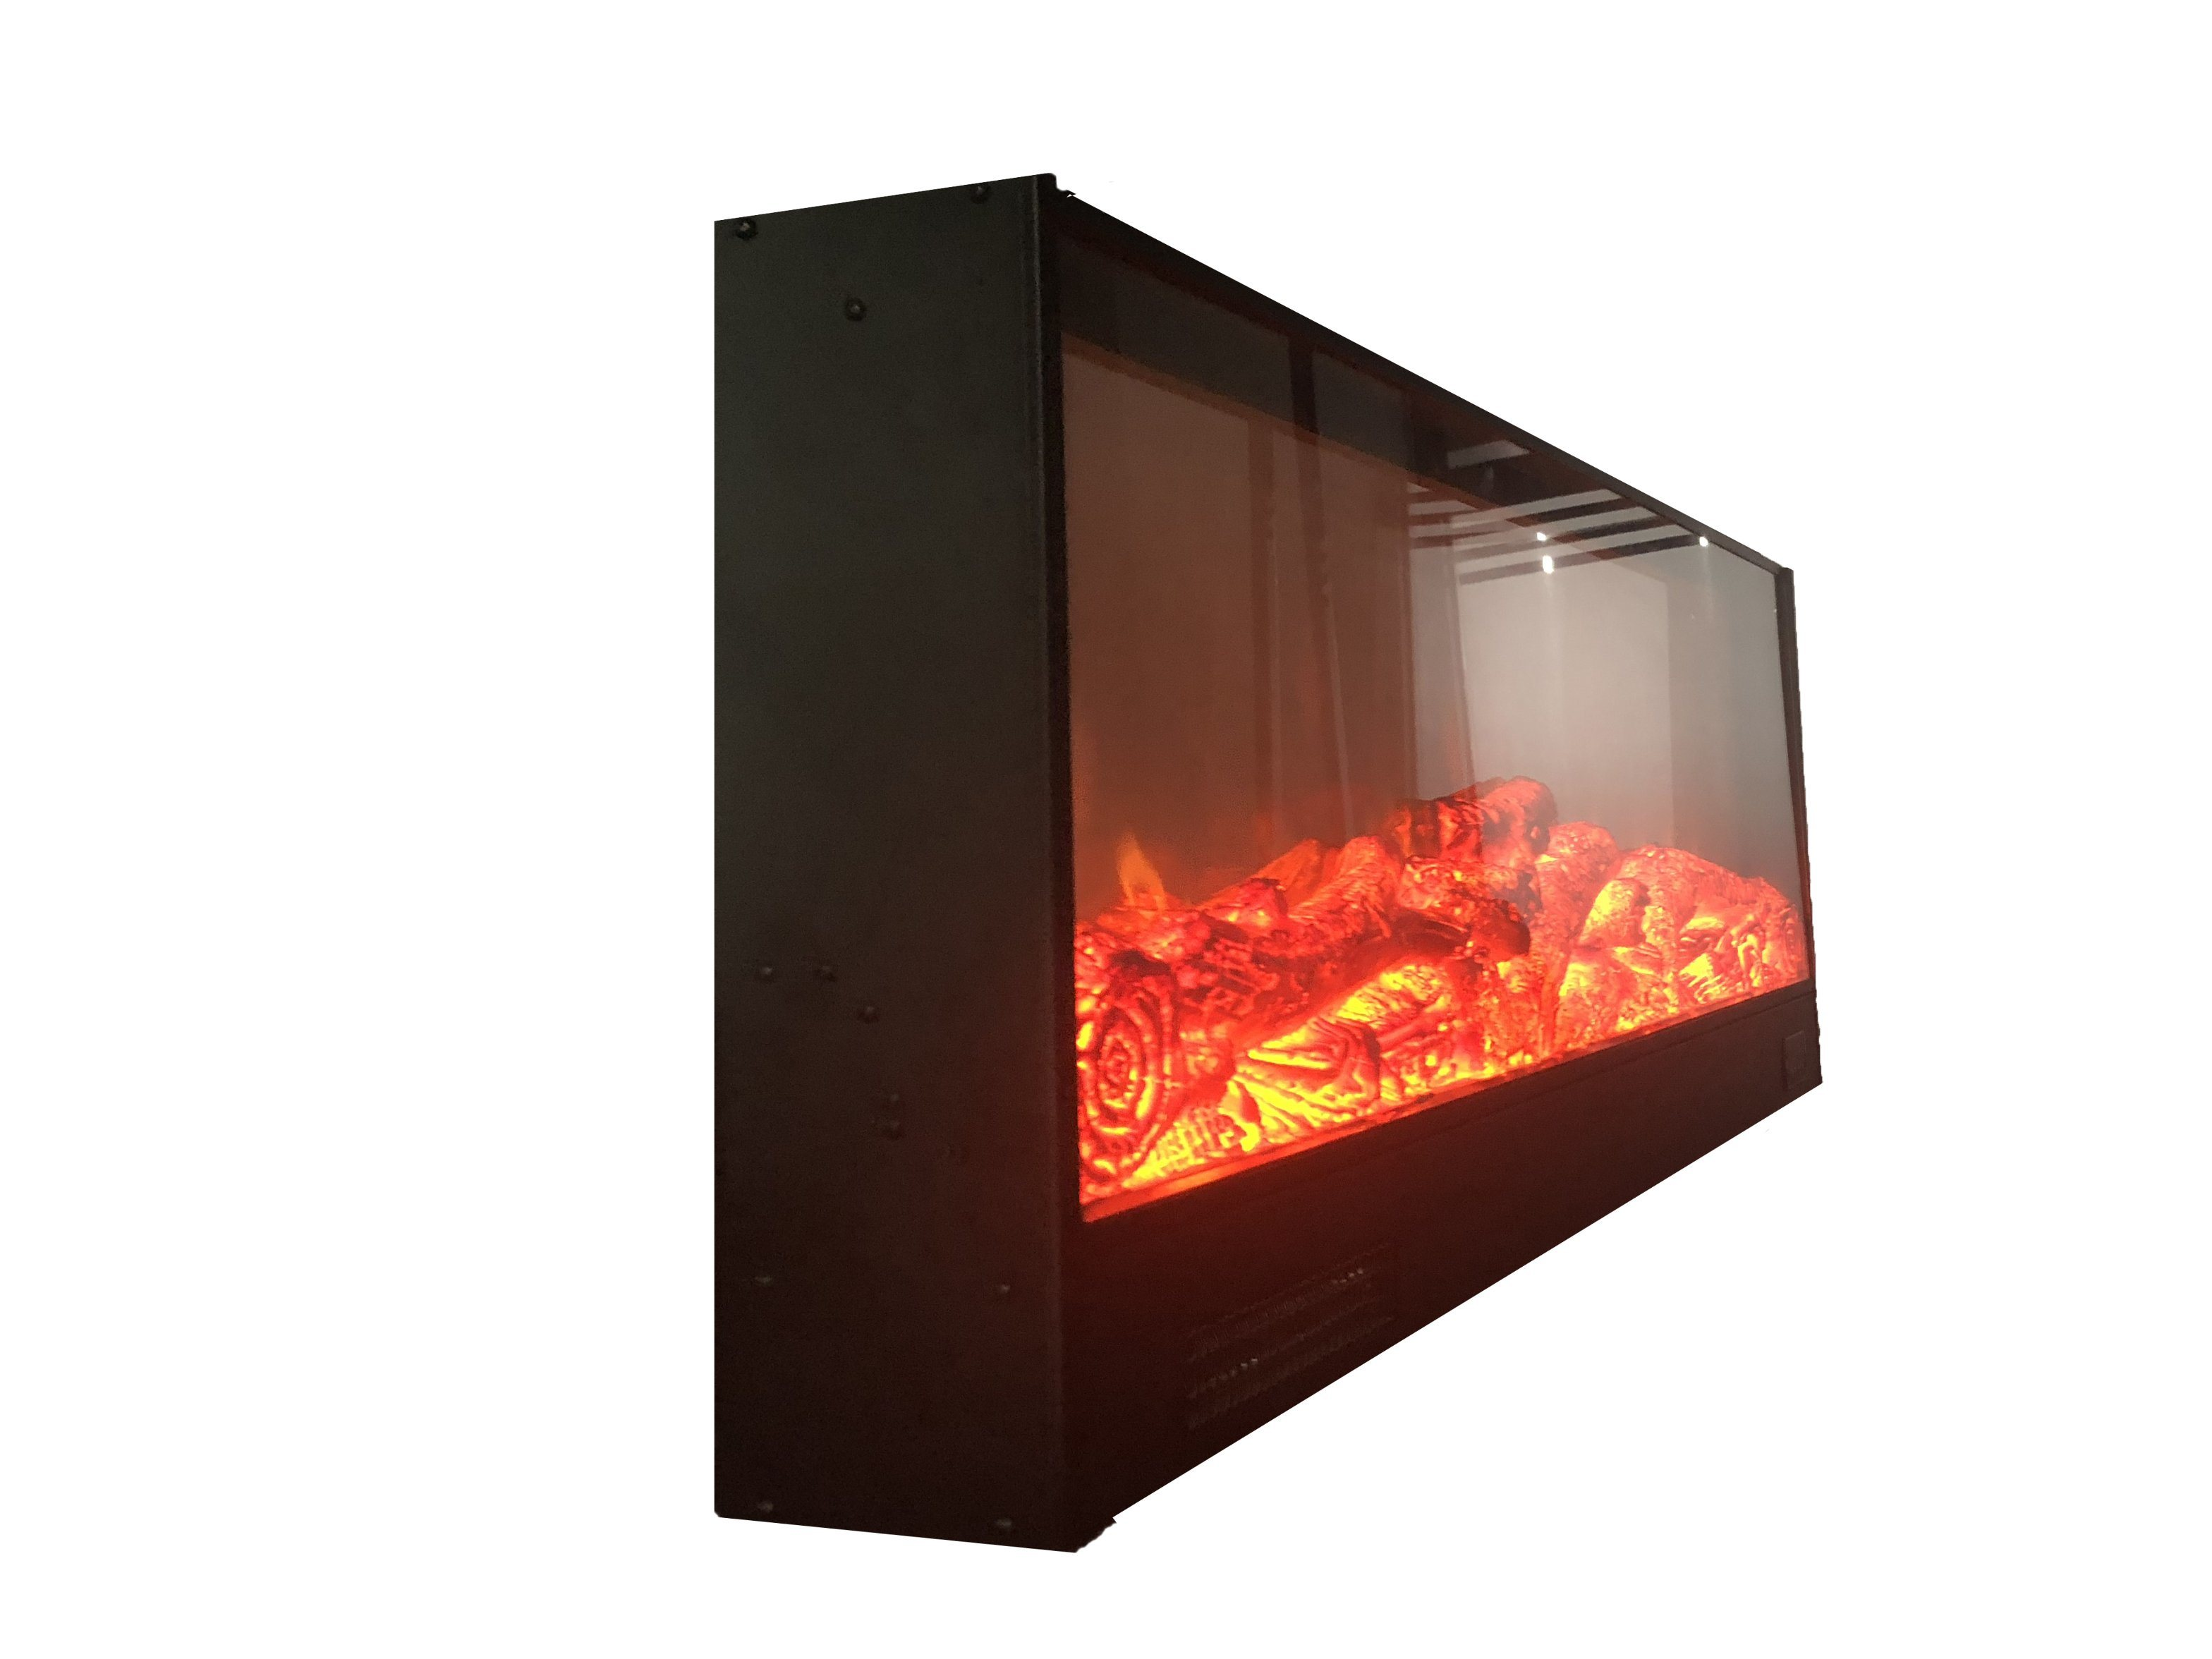 Outdoor Fireplace Electric China 1500w Intelligent Electric Fireplace In Mantel Outdoor